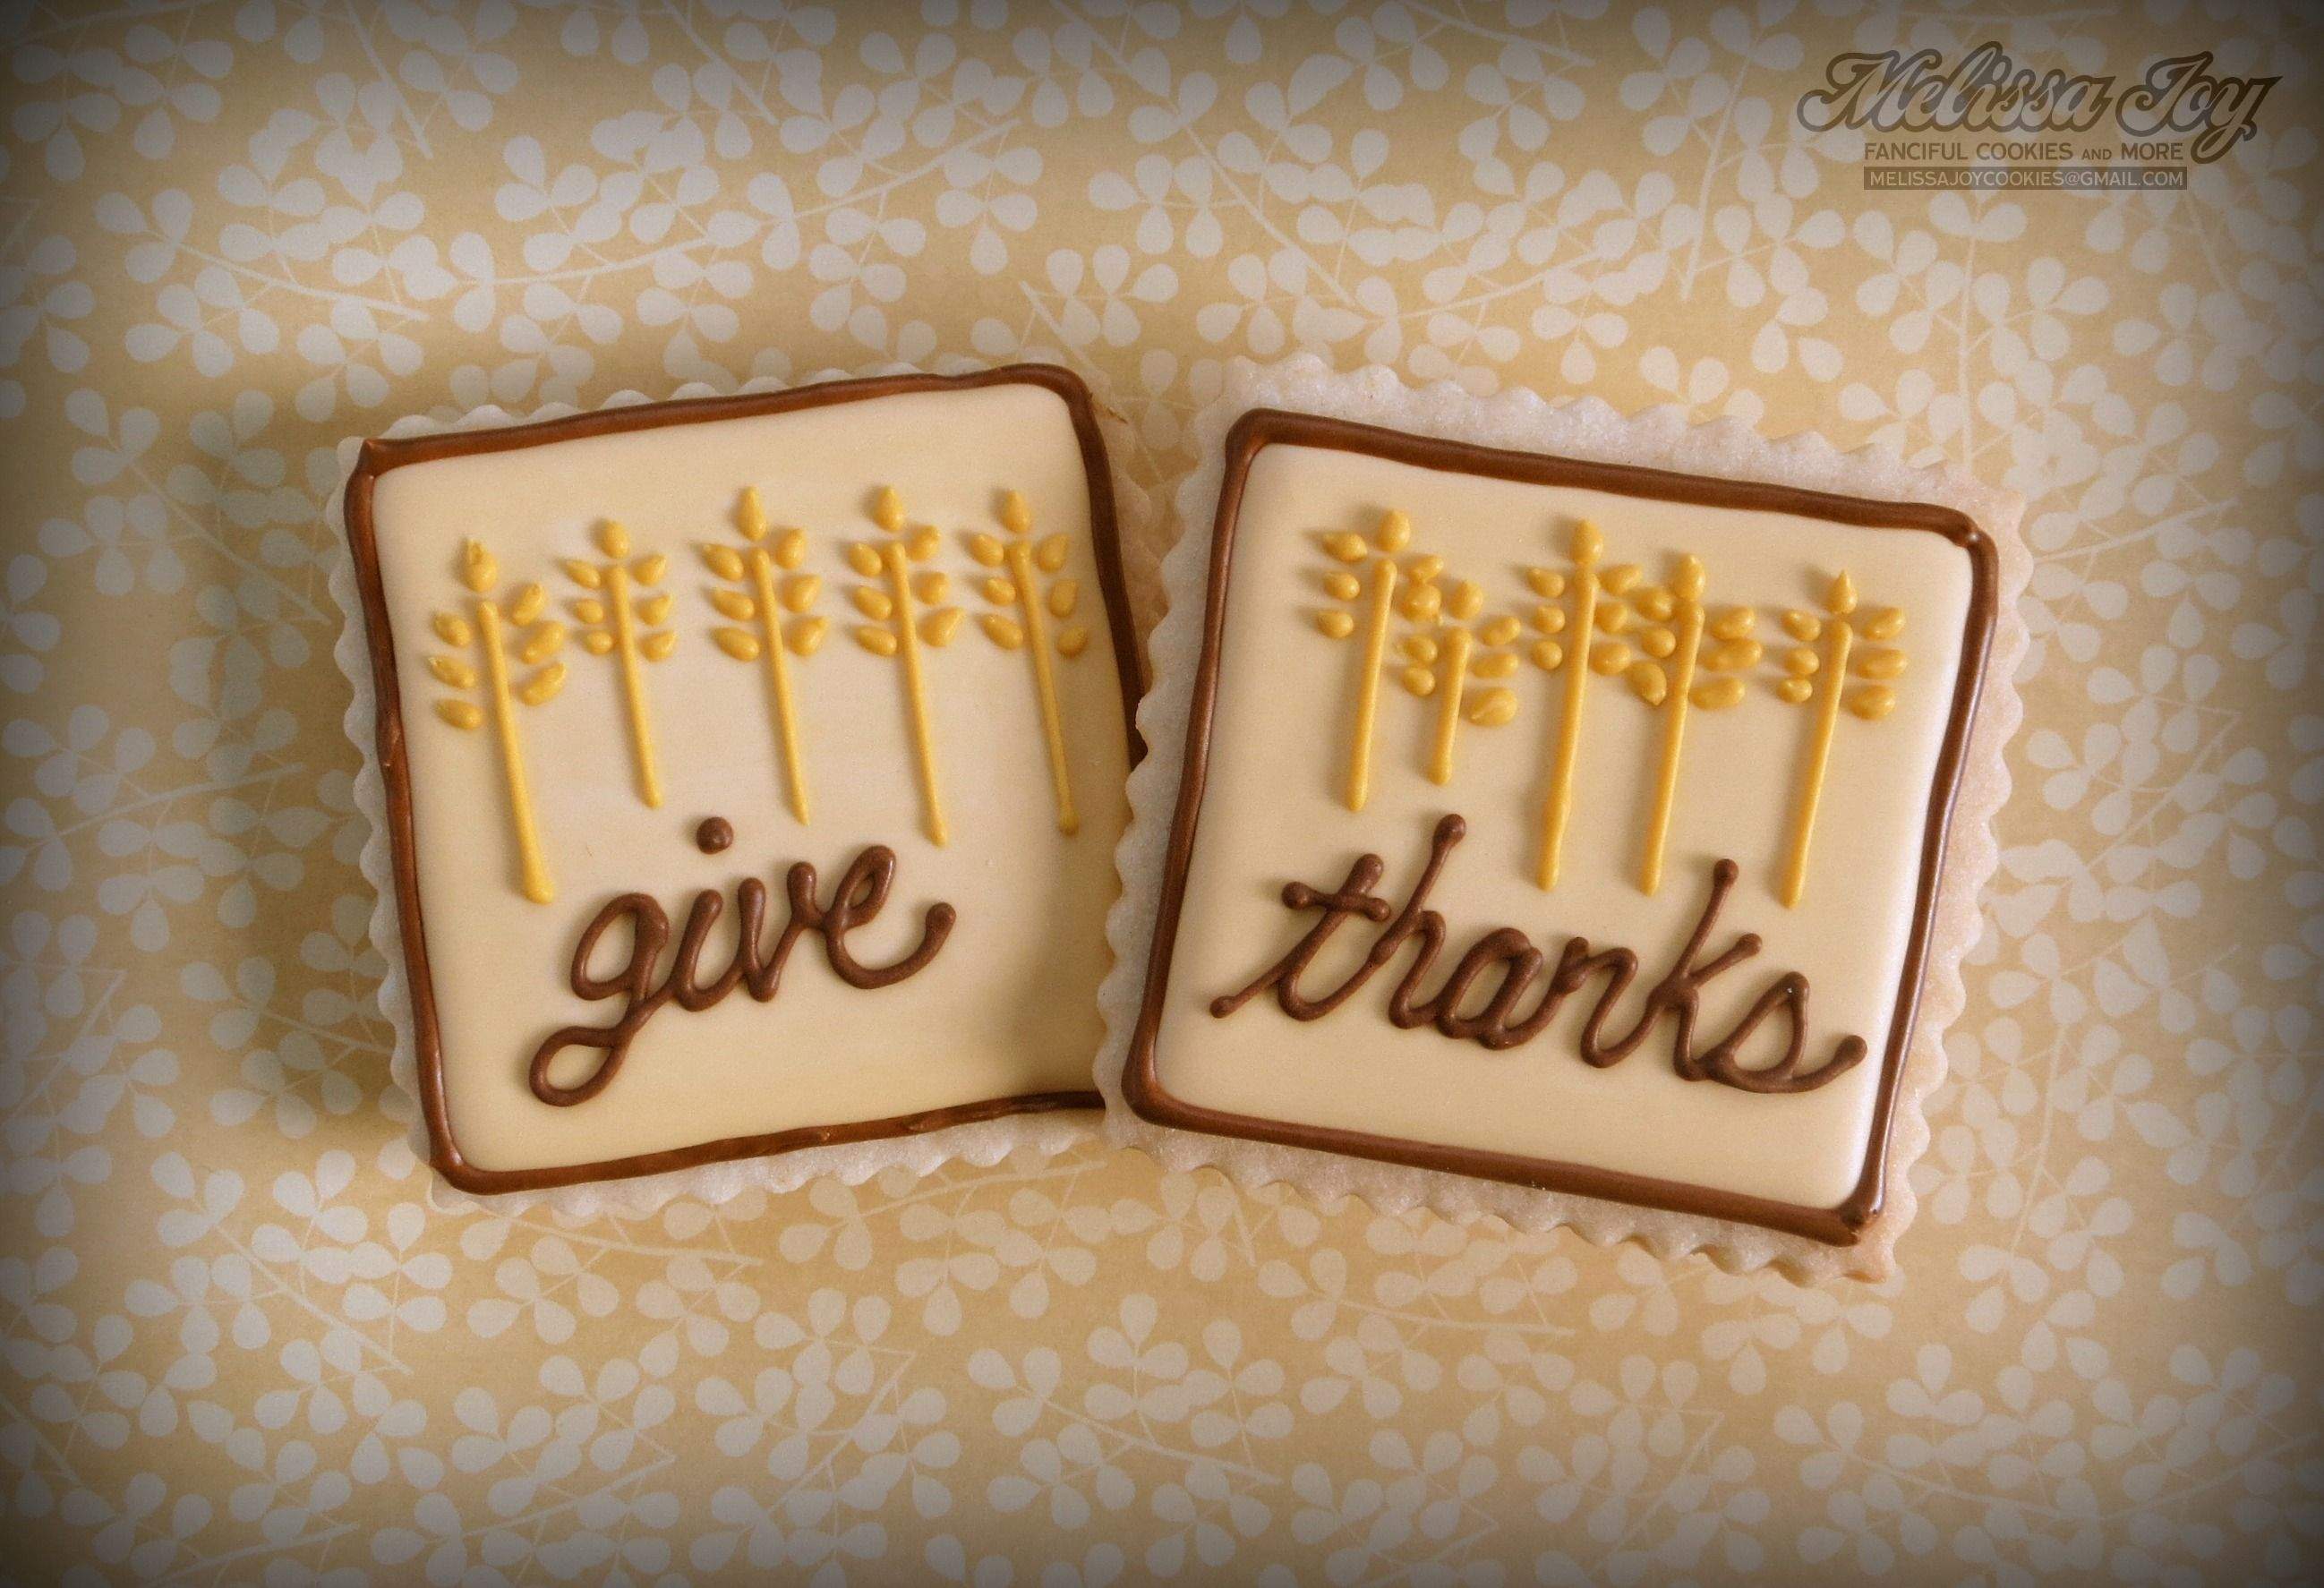 thanksgiving-cookie-by-melissa-jo.jpg 2,596×1,774 pixels